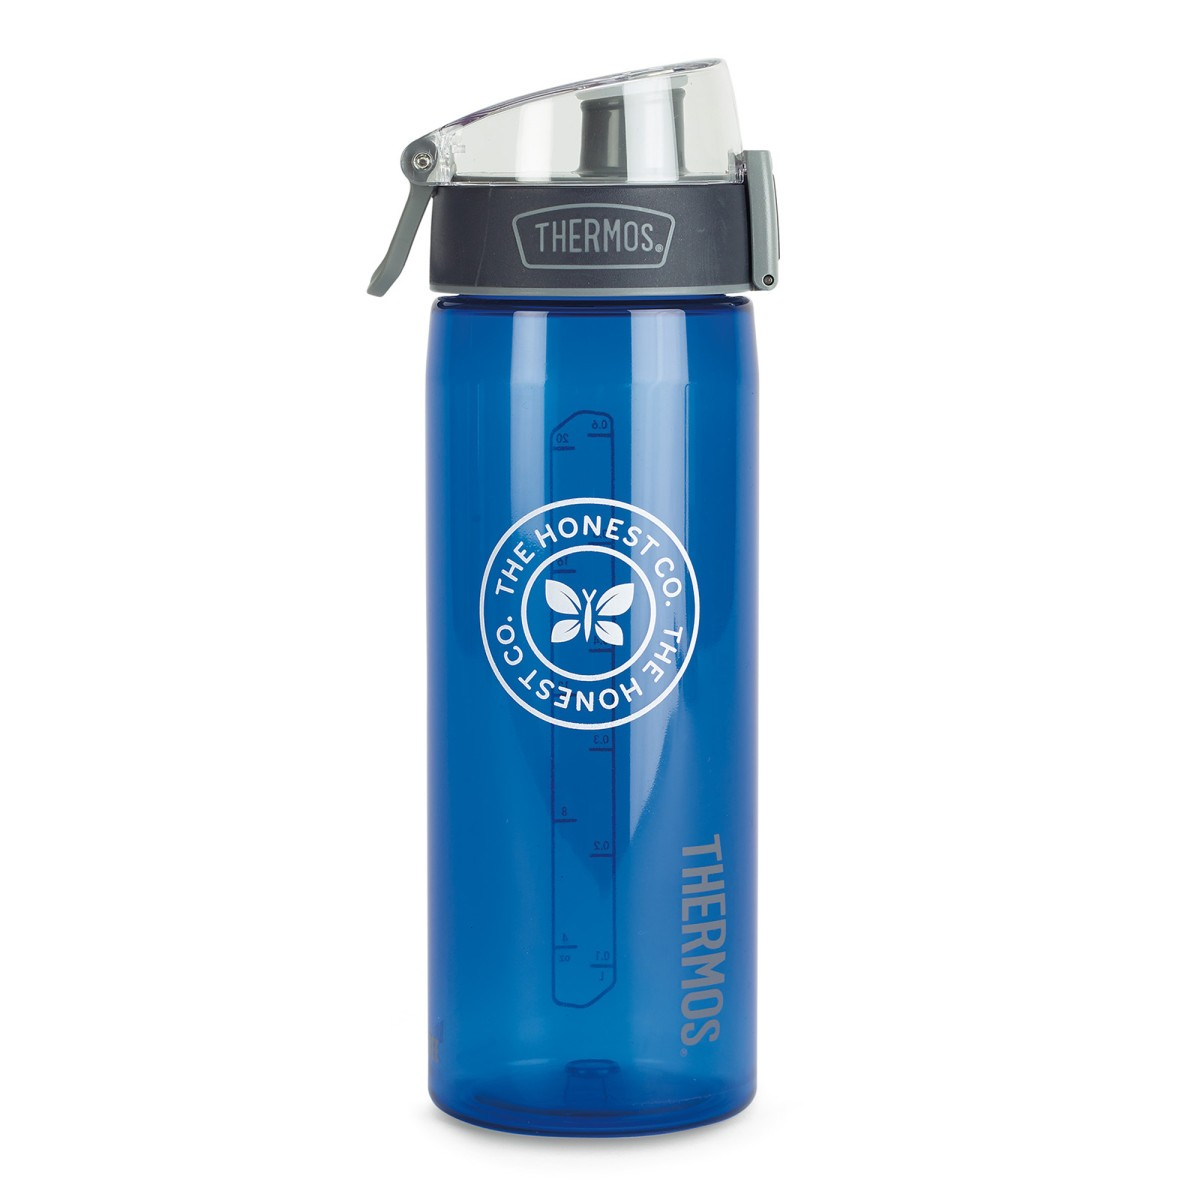 Thermos Hydration Bottle - 24 Oz.